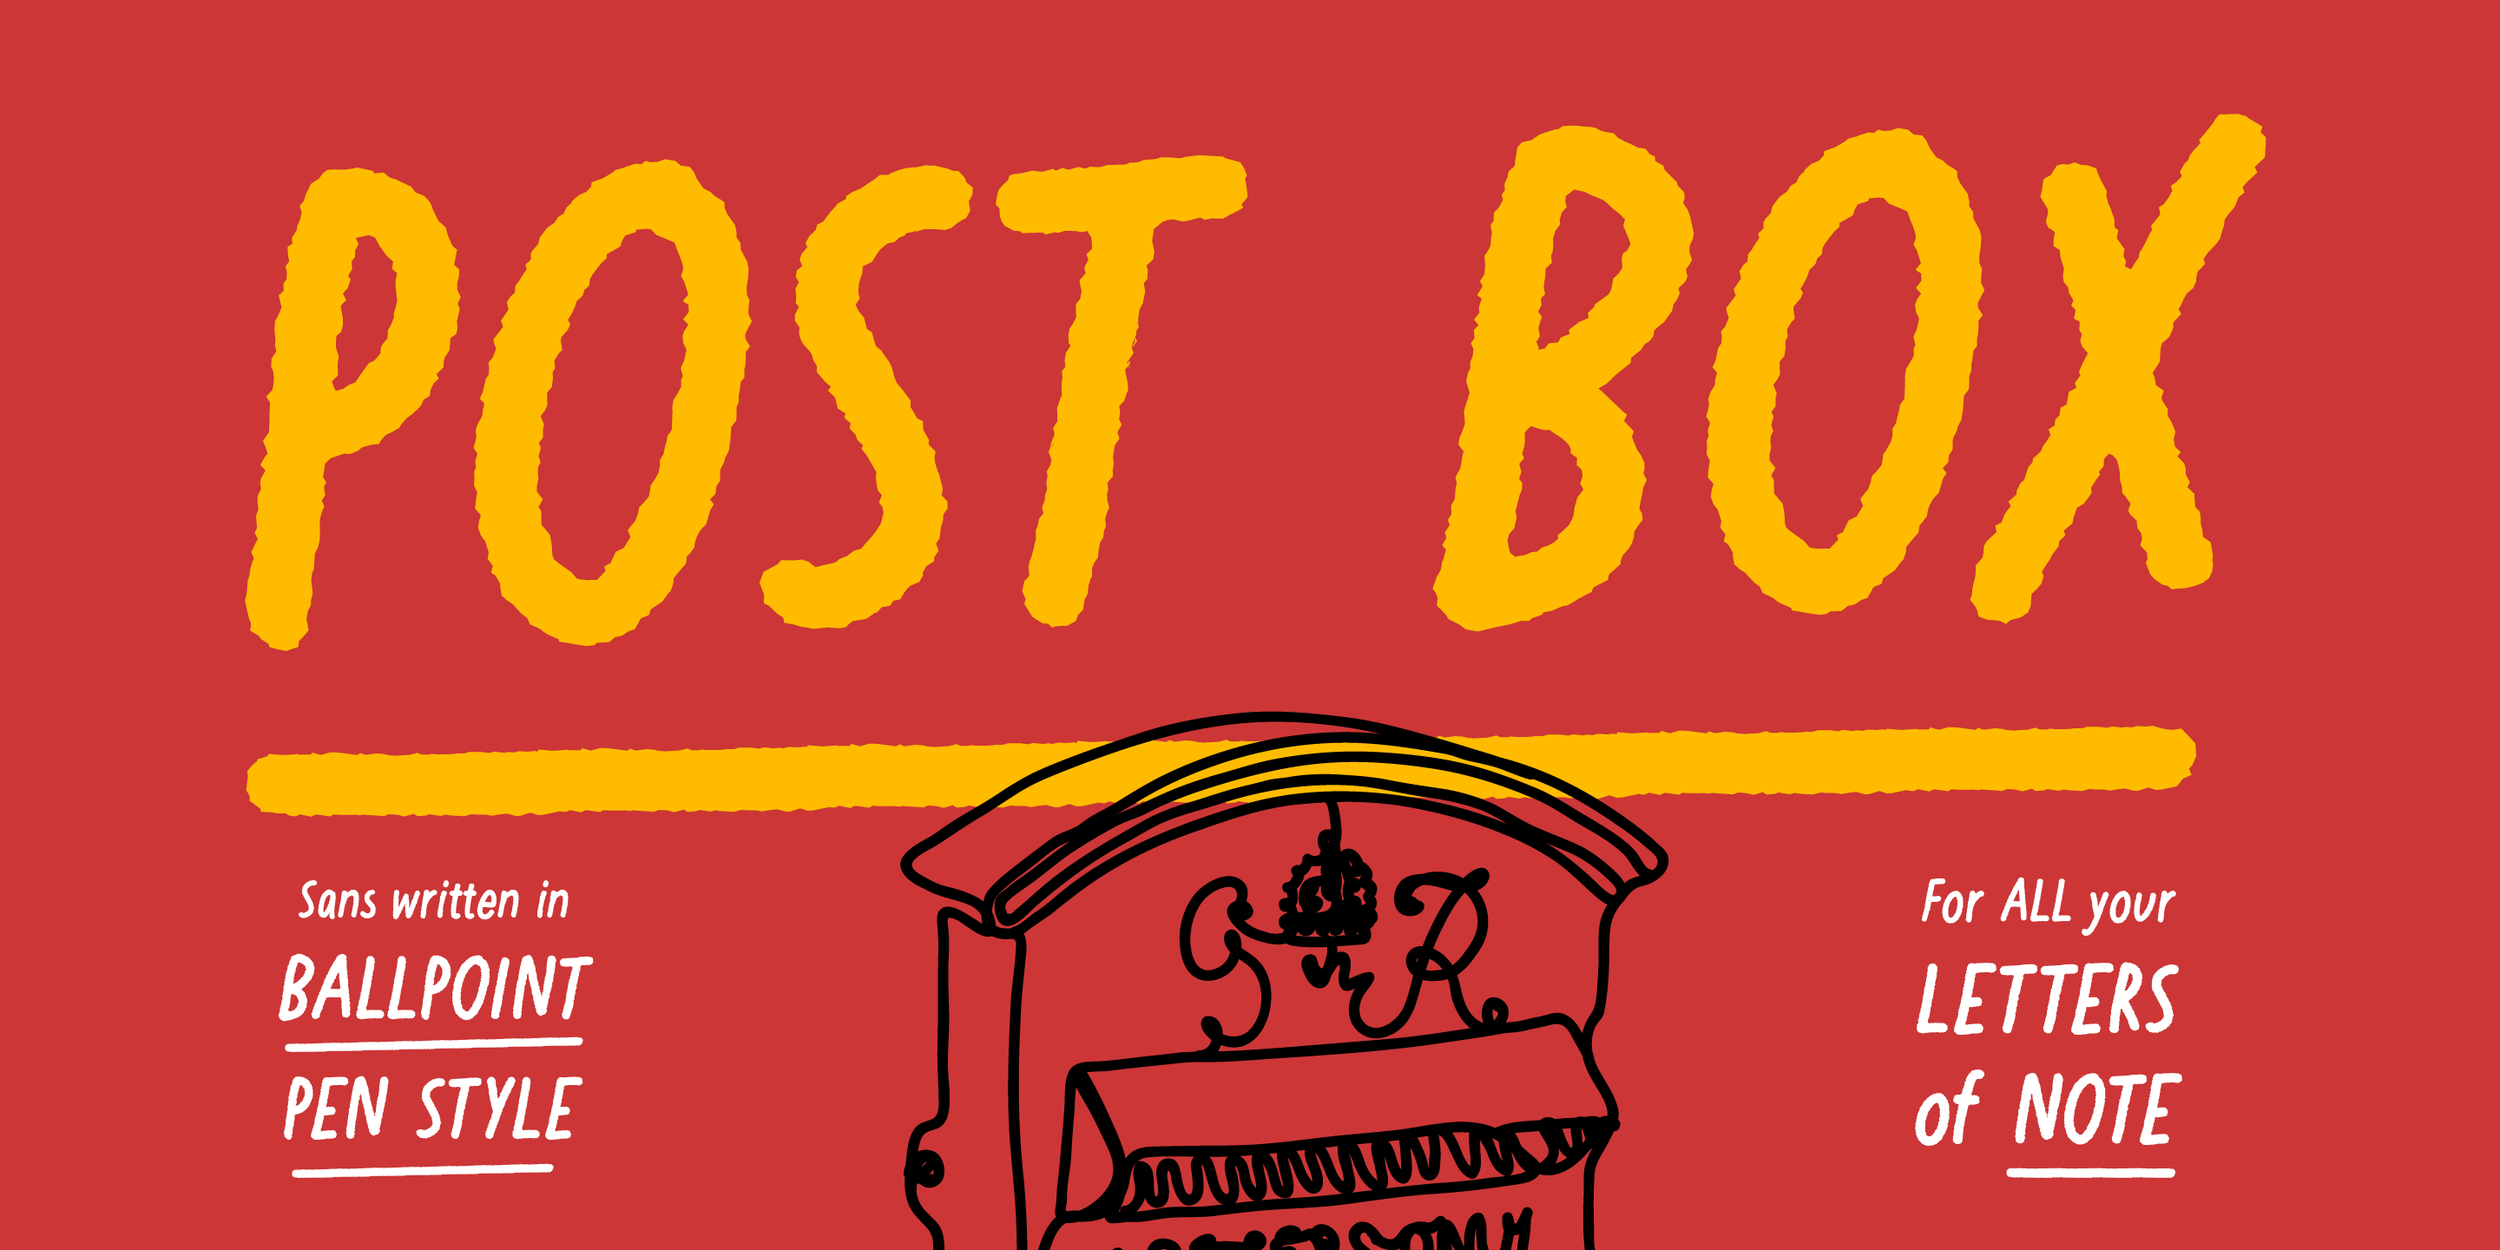 Post Box - Handwritten sans serif - 1.png